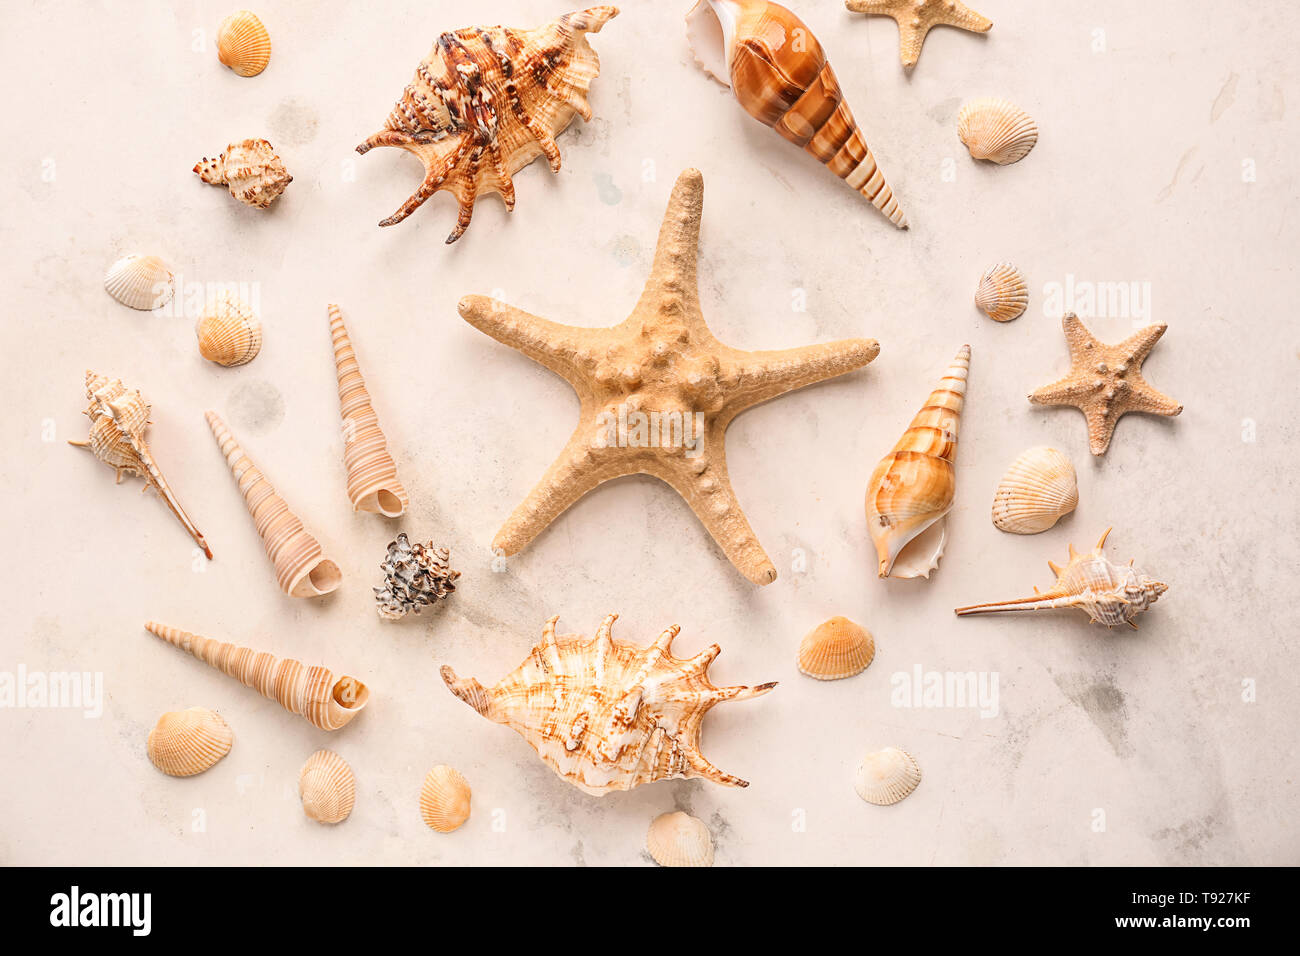 Different sea shells with starfishes on light background - Stock Image